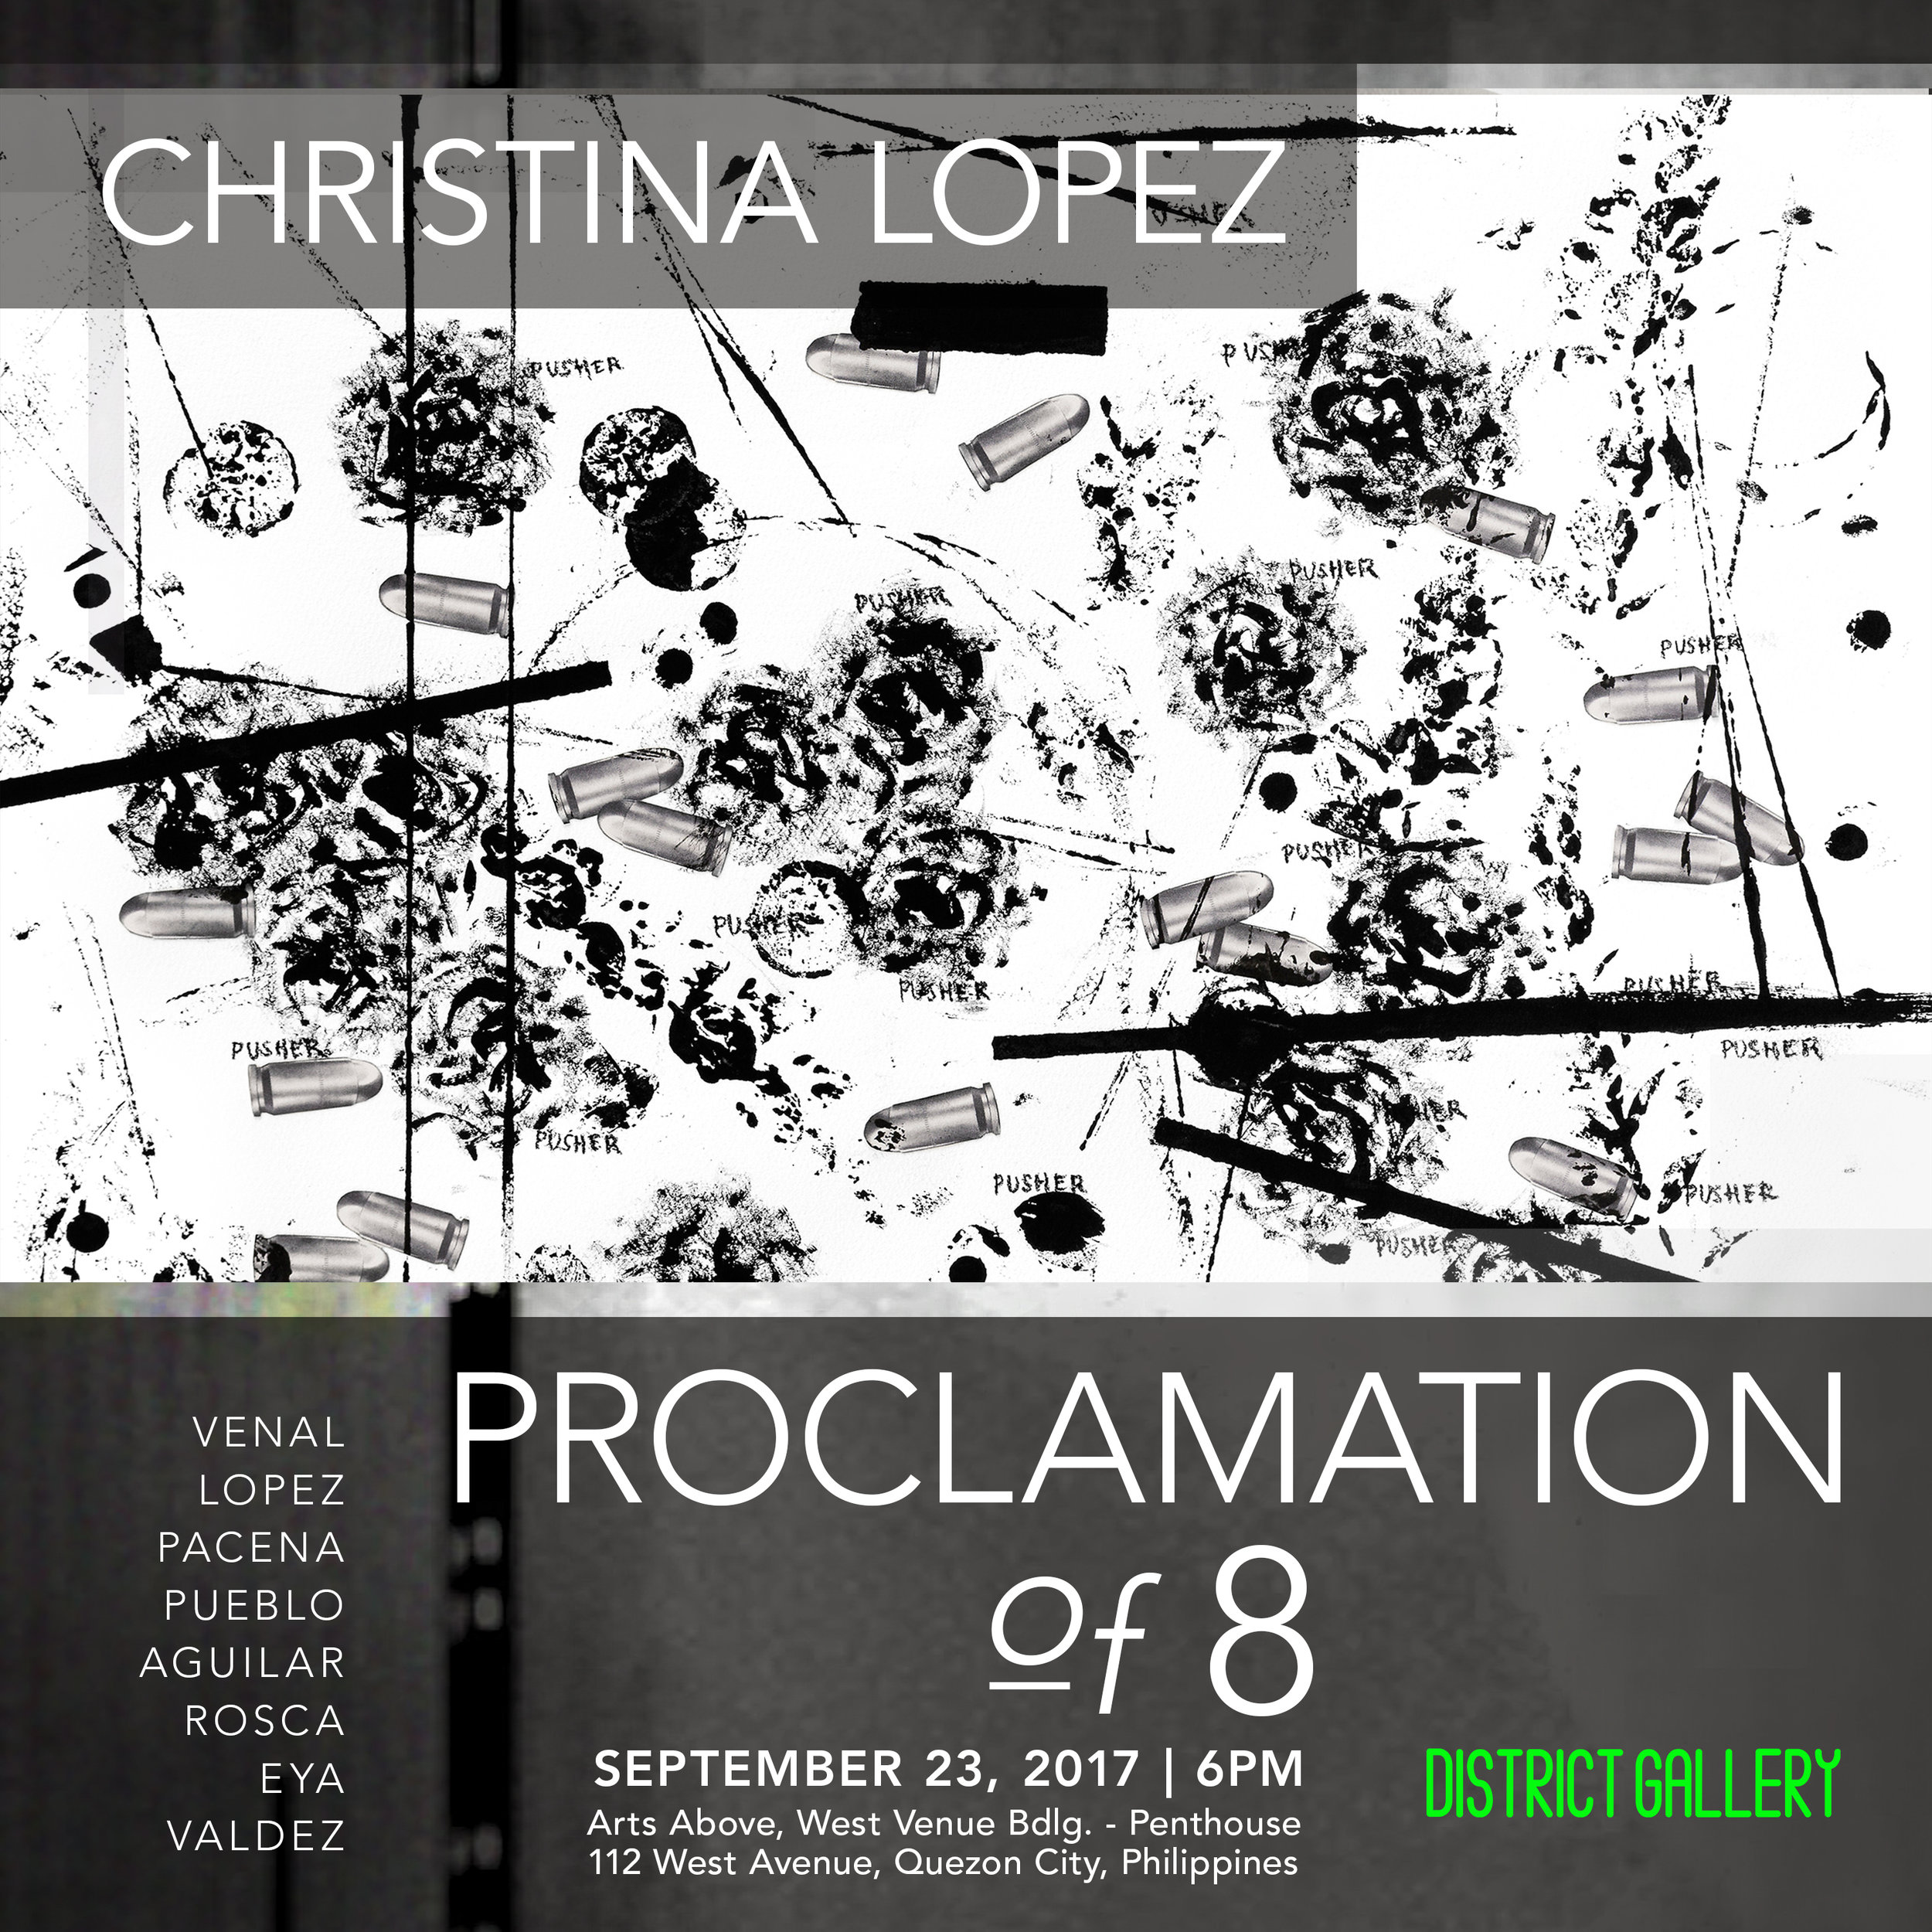 2 PROCLAMATION of Christina Lopez.jpg